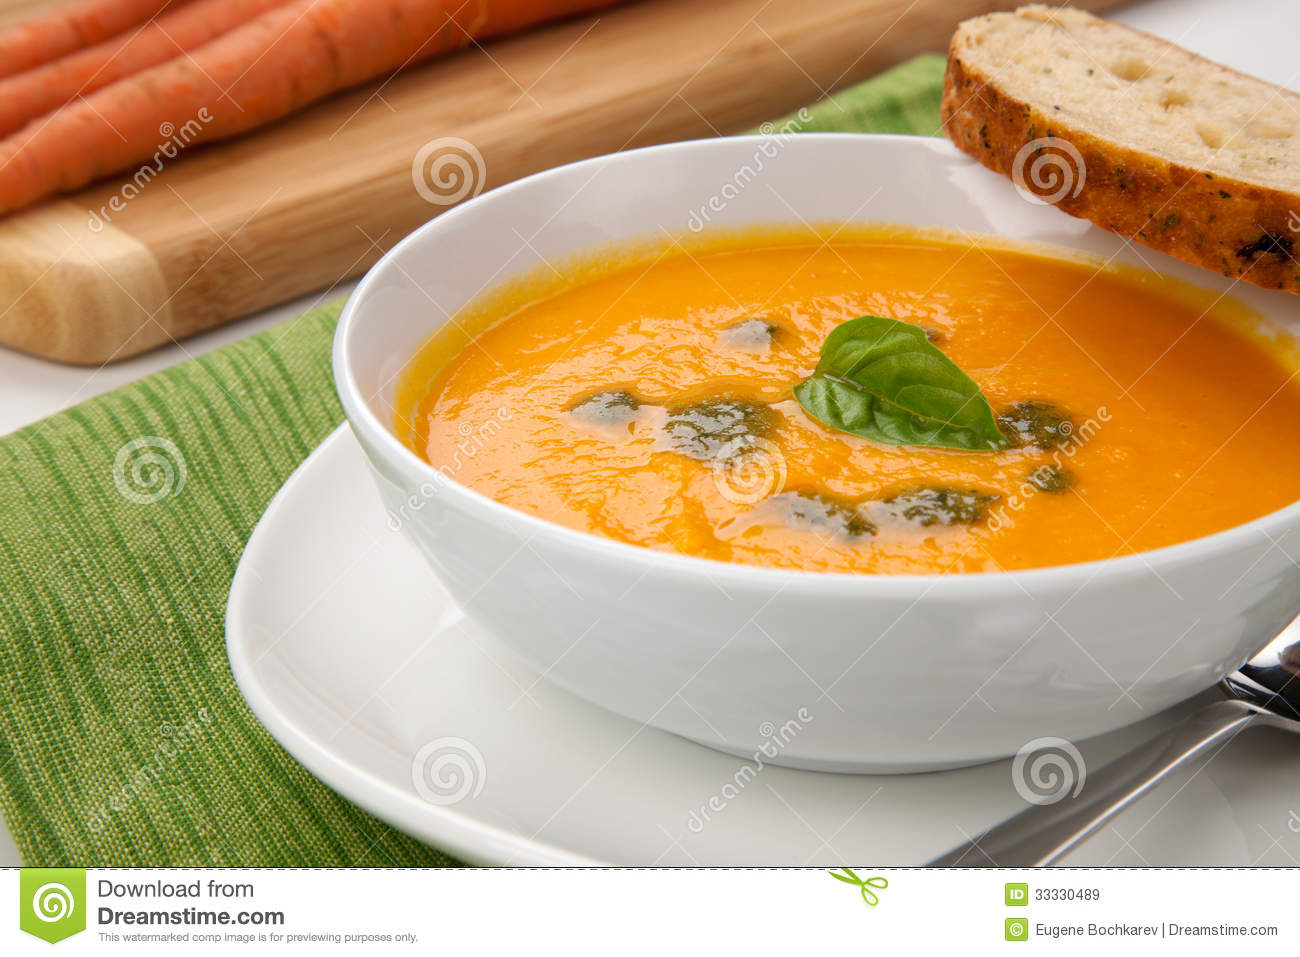 Carrot Soup Royalty Free Stock Images - Image: 33330489